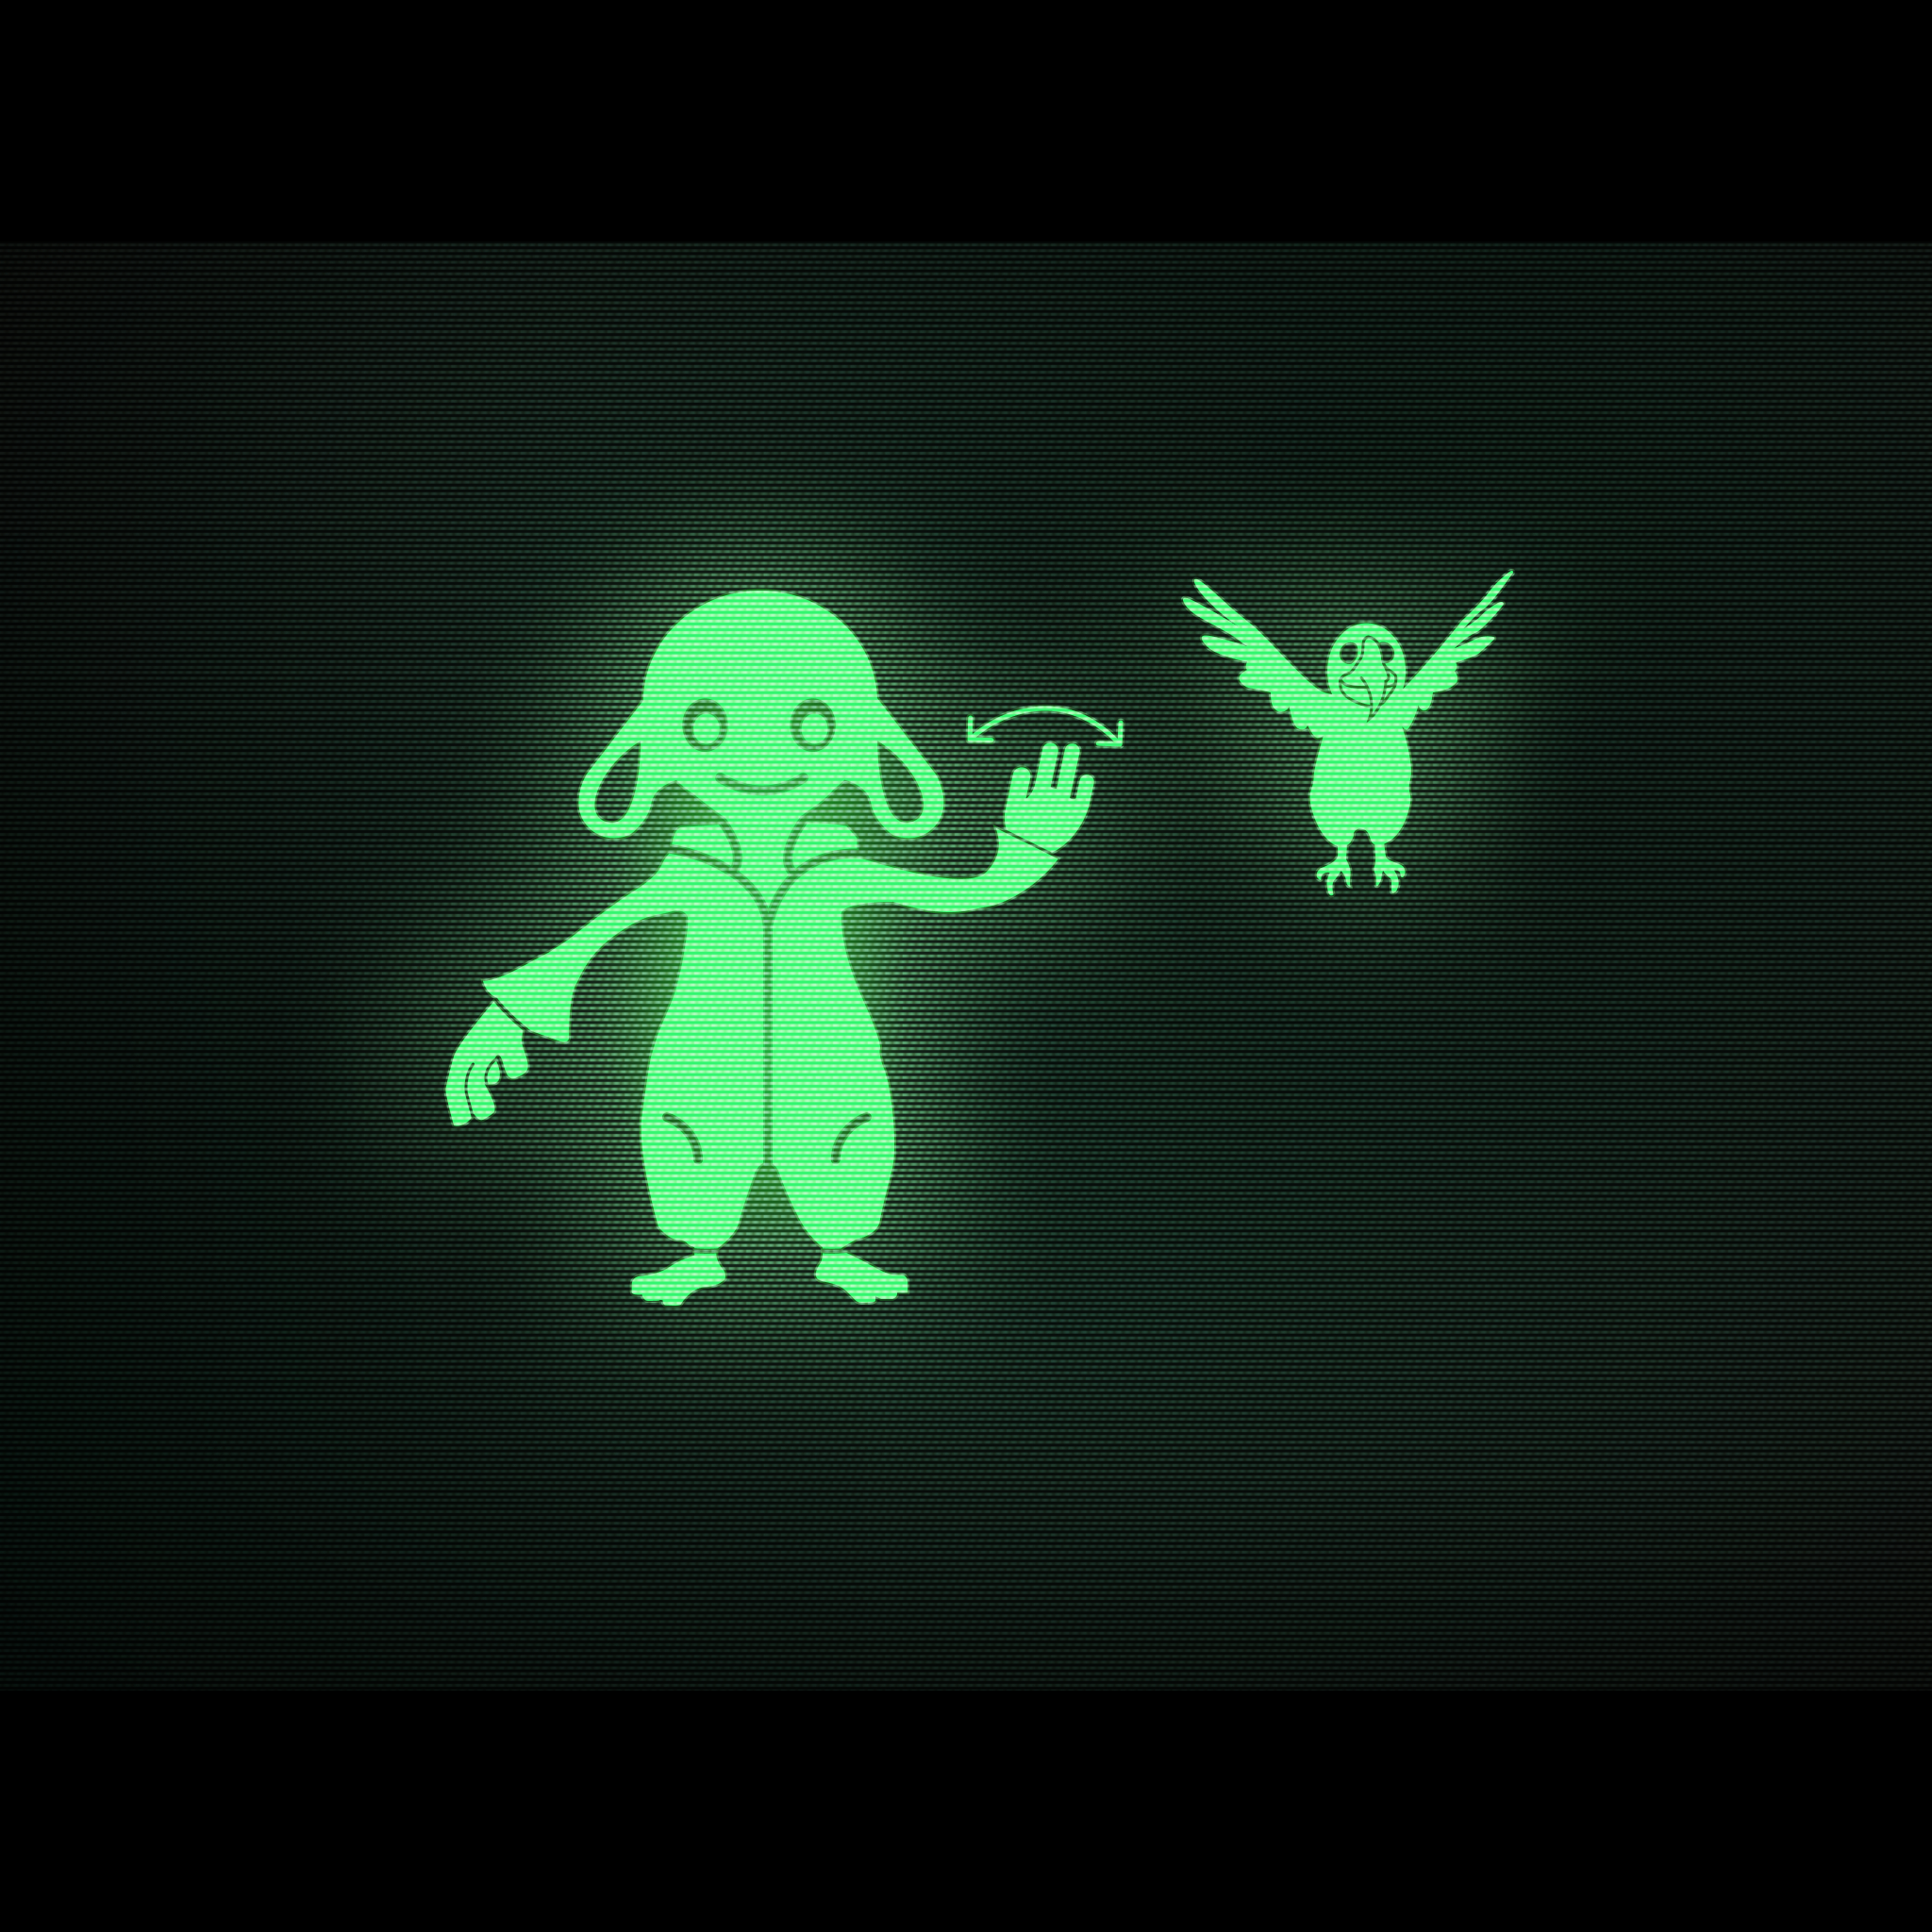 The screen depicts a bipedal lamb waving at a parrot that's flying in the air